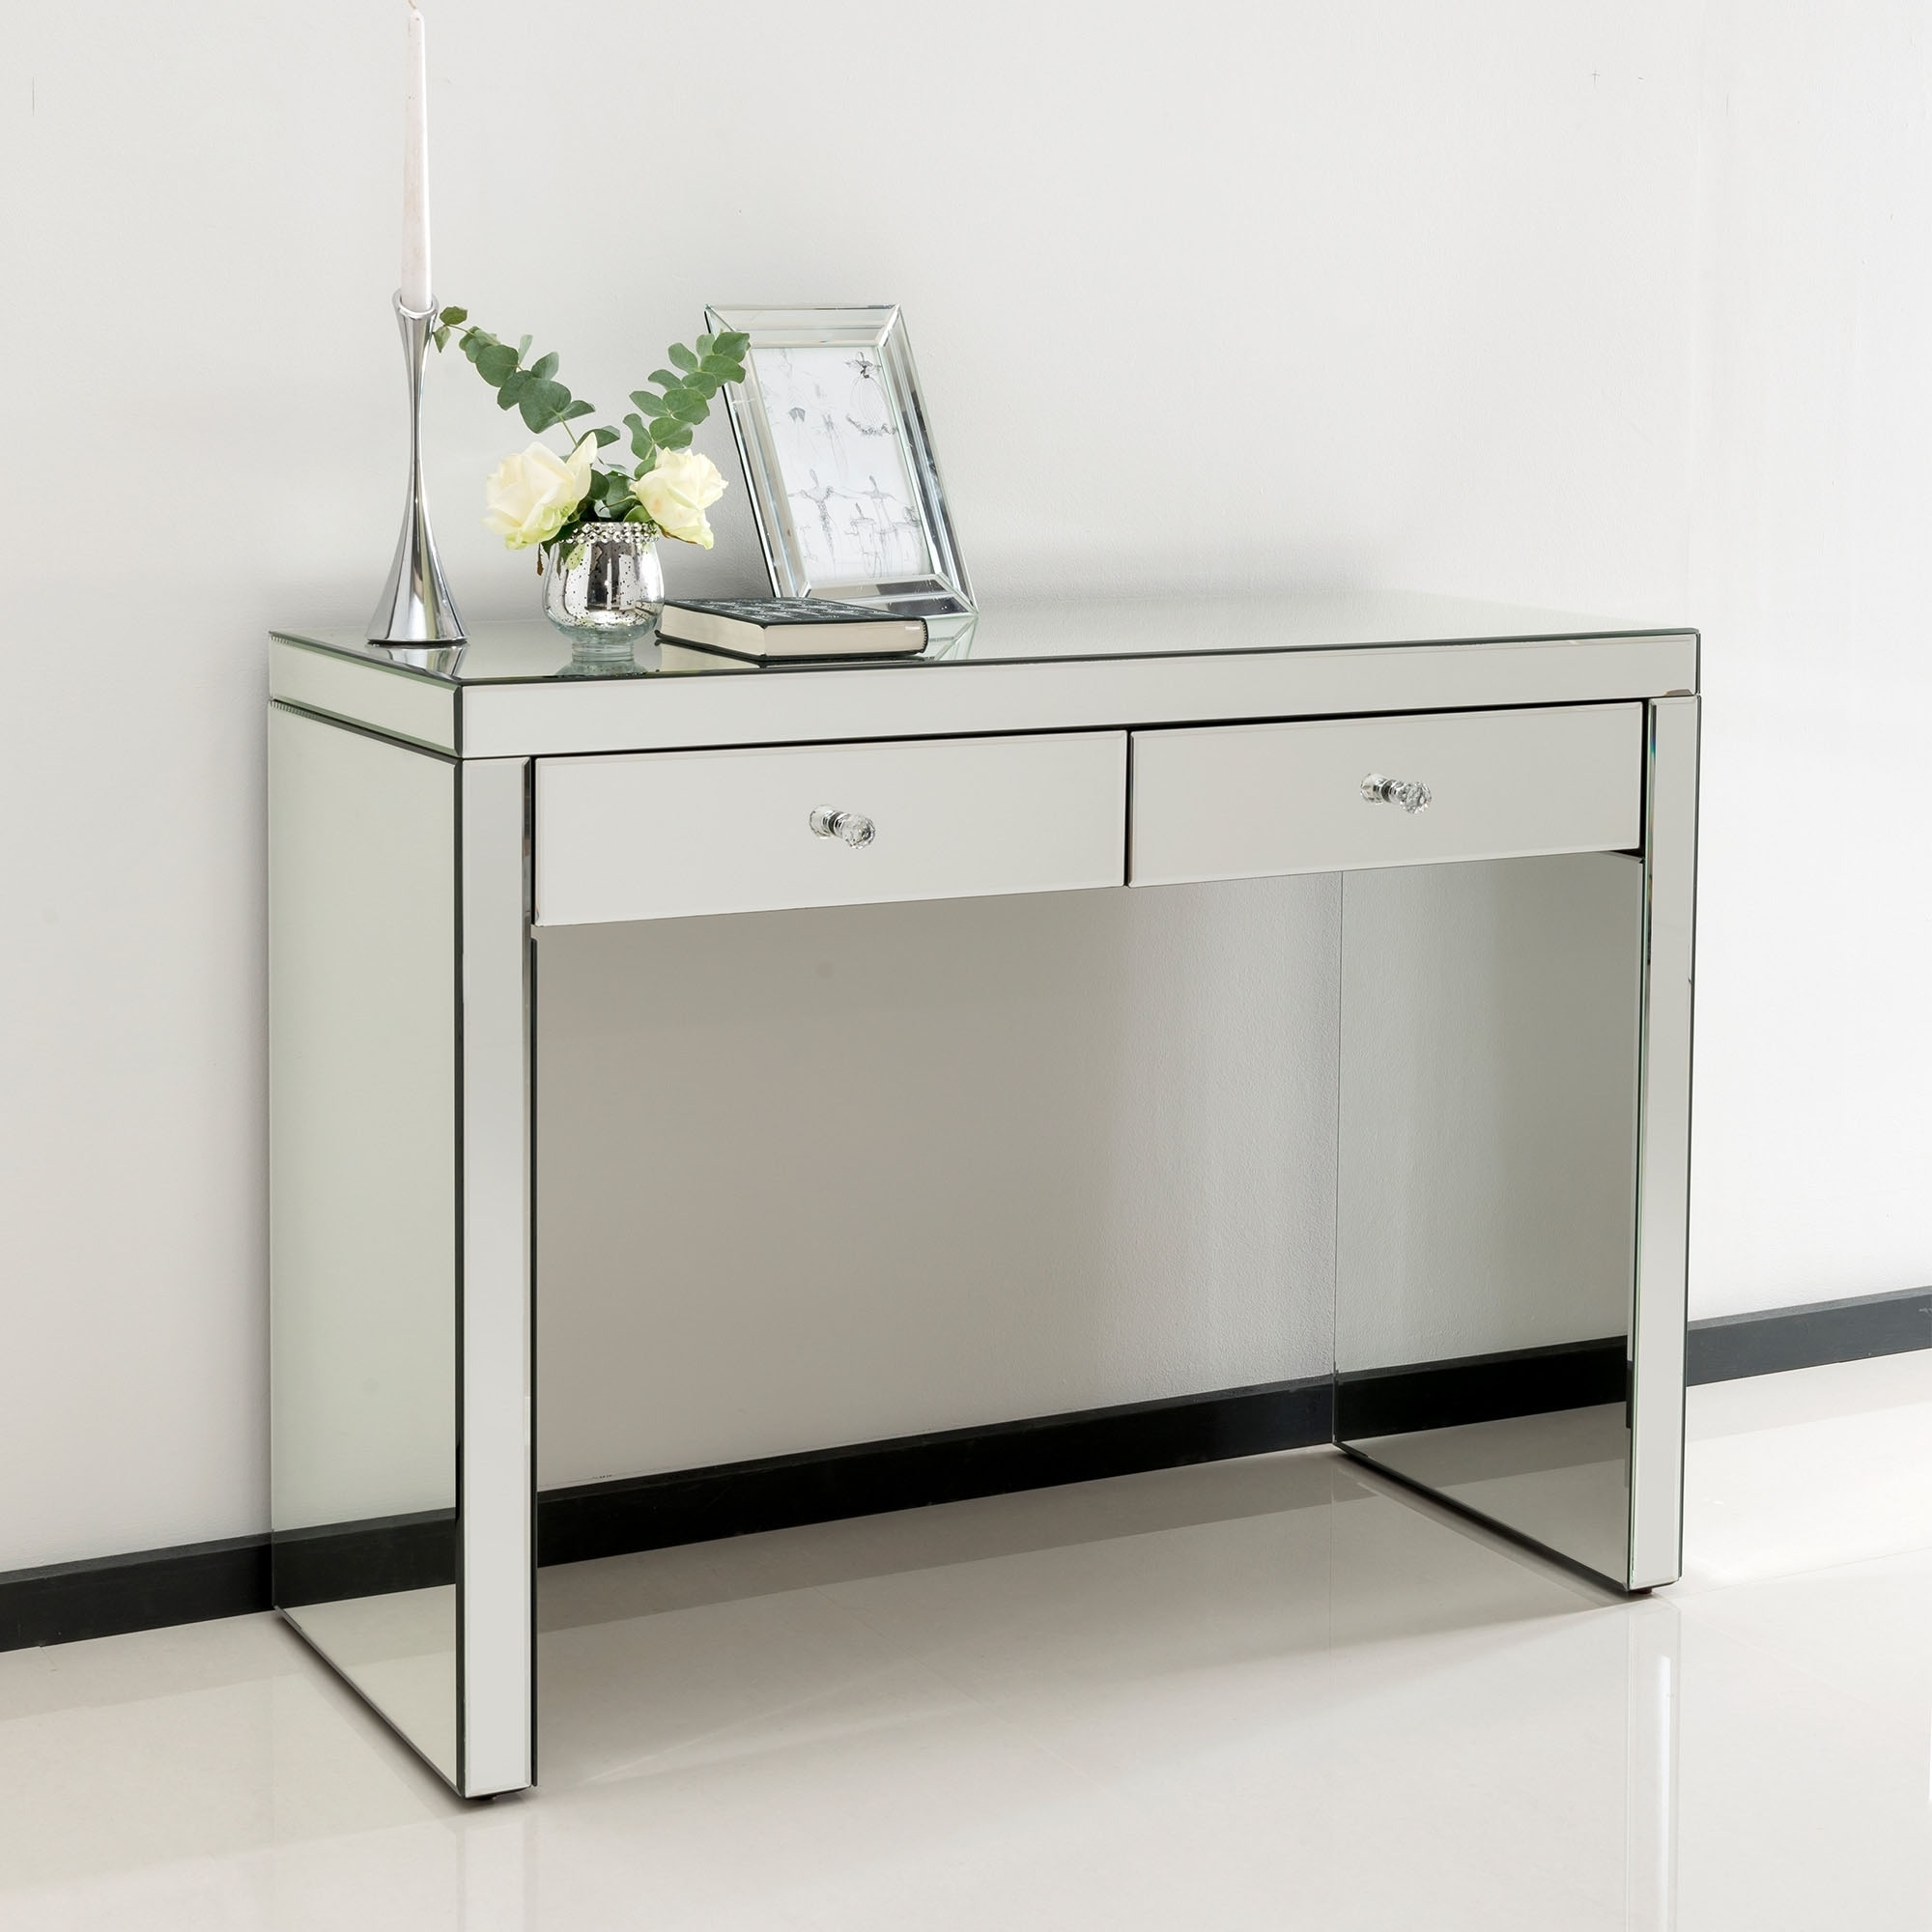 Romano Crystal Mirrored Dressing Table Venetian Mirrored Furniture